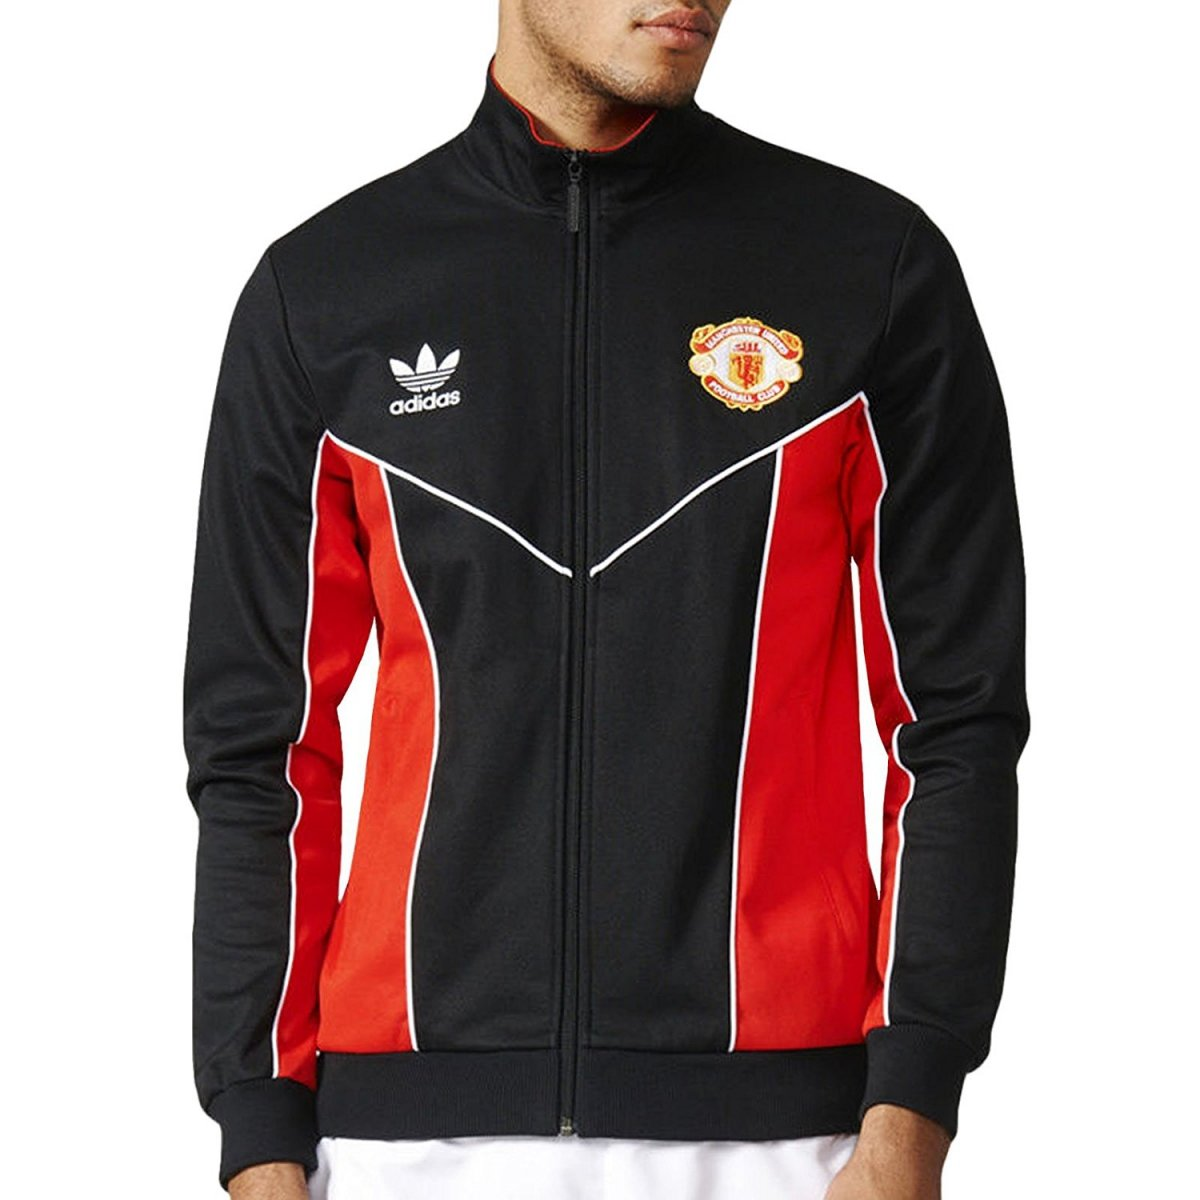 ADIDAS ORIGINALS TARCK JACKET MANCHESTER UNITED FC TRACK TOP